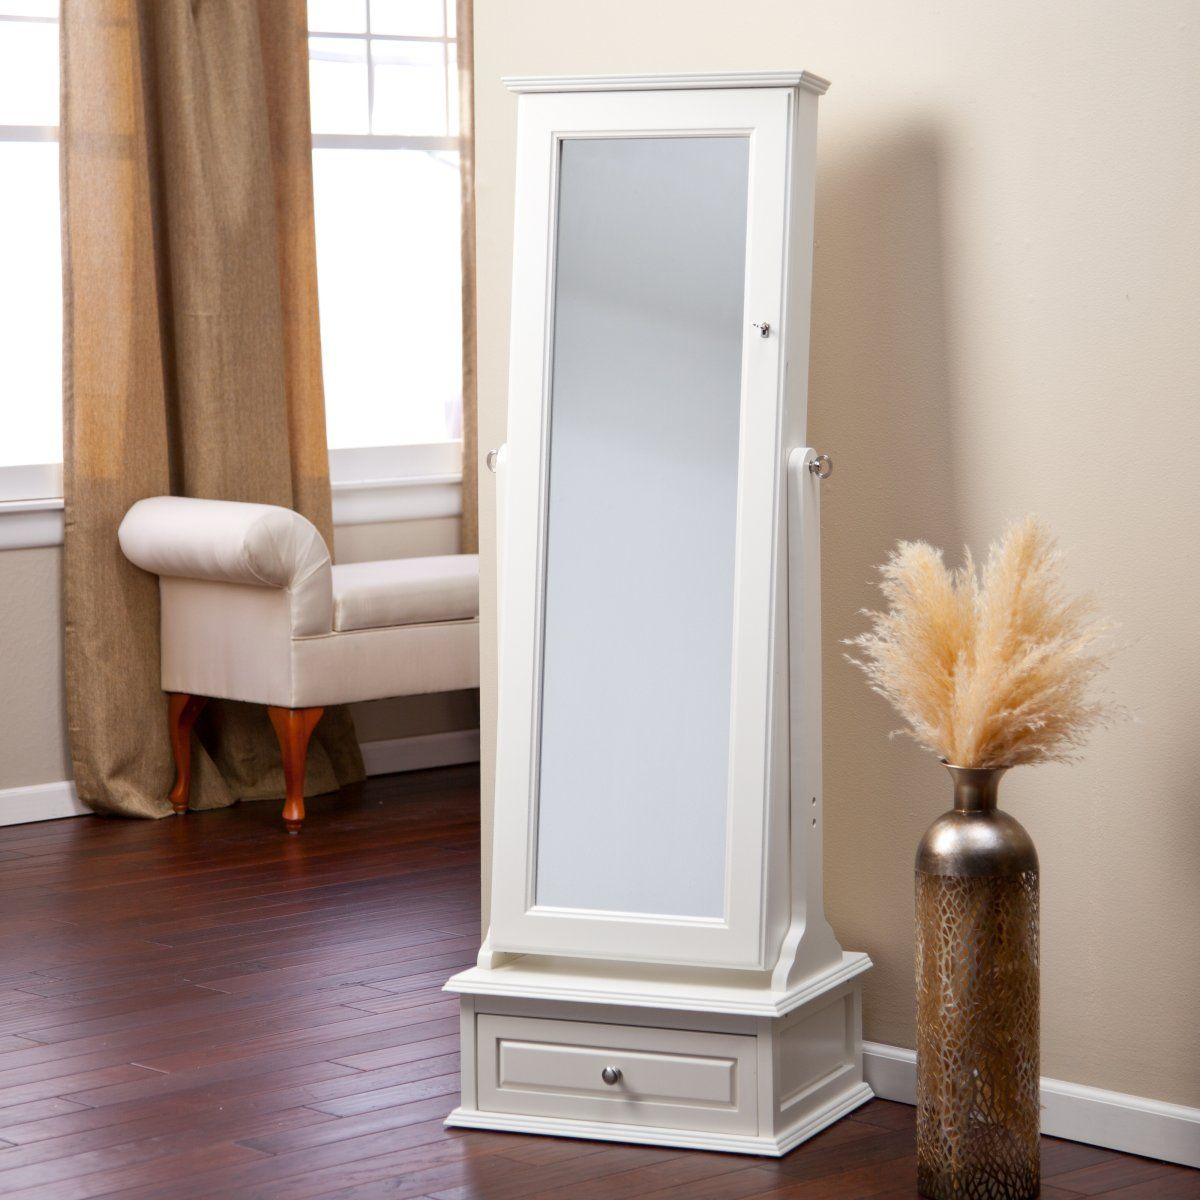 Transitional Cheval Mirror Jewelry Armoire with Base Drawer Off